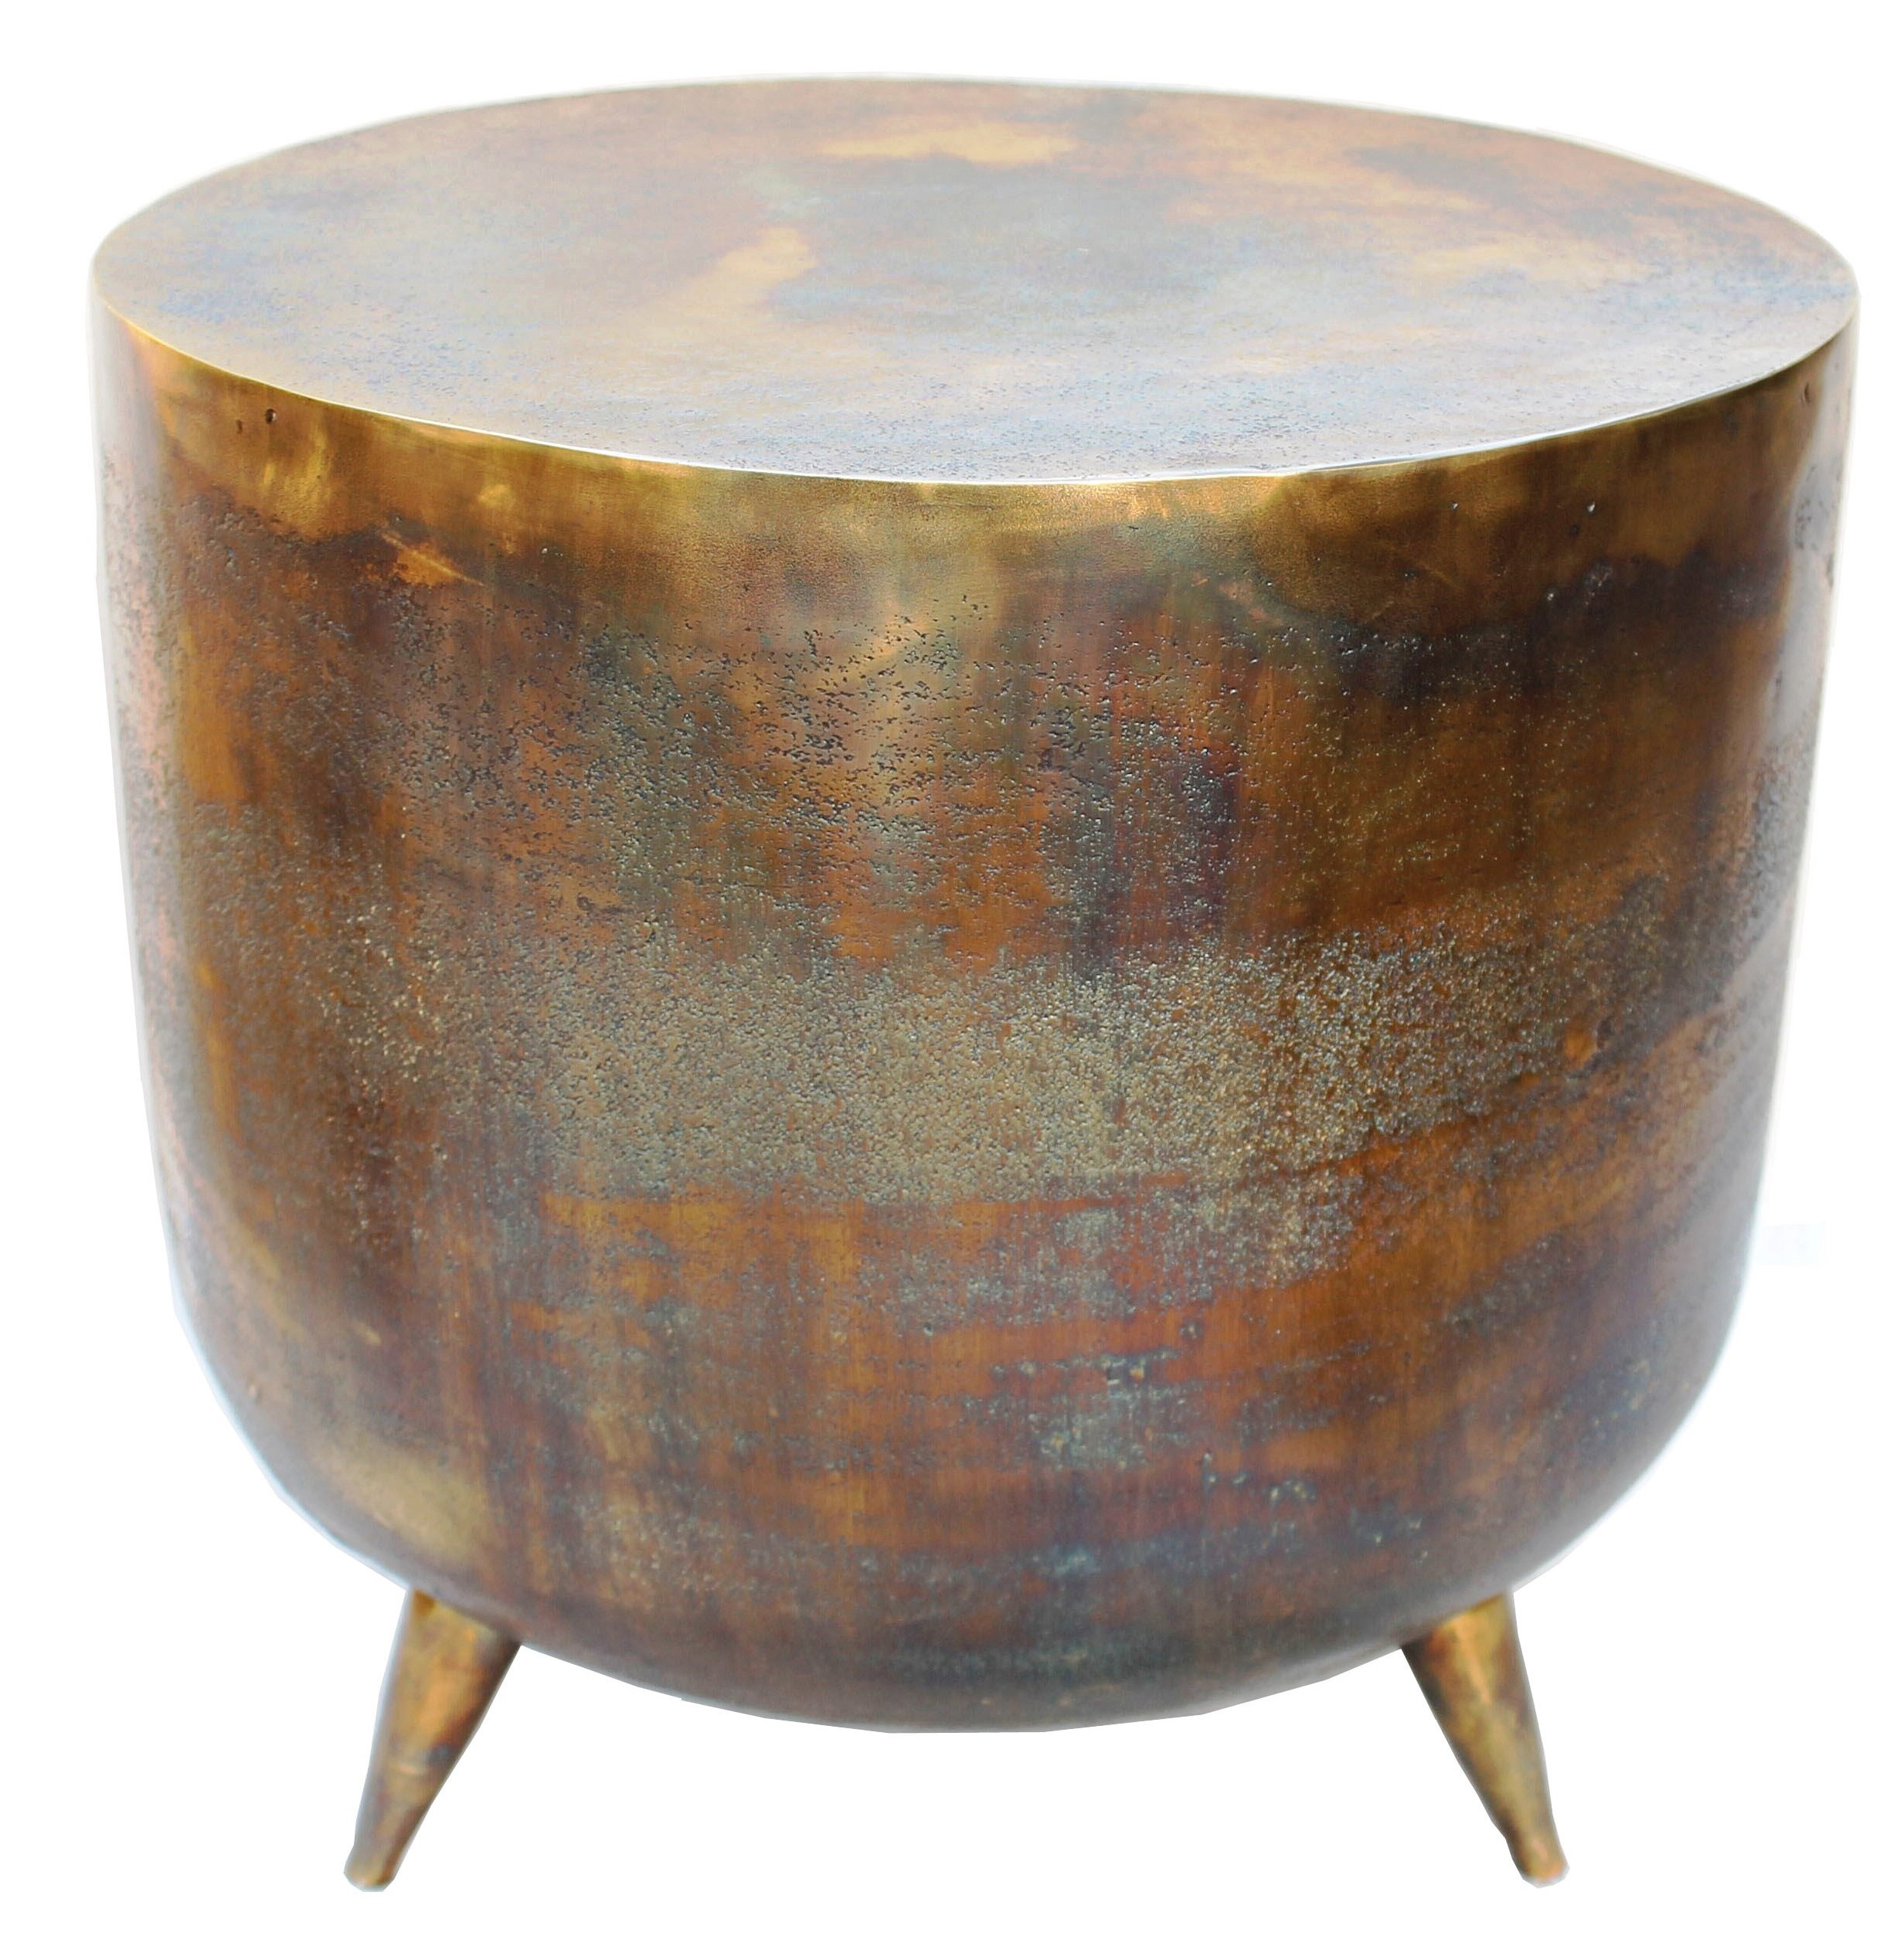 patia accent table distressed brass cylinder drum asian porcelain lamps bar bistro teak green bedside glass drawer pulls tiffany lily lamp shades black marble top end tables tall